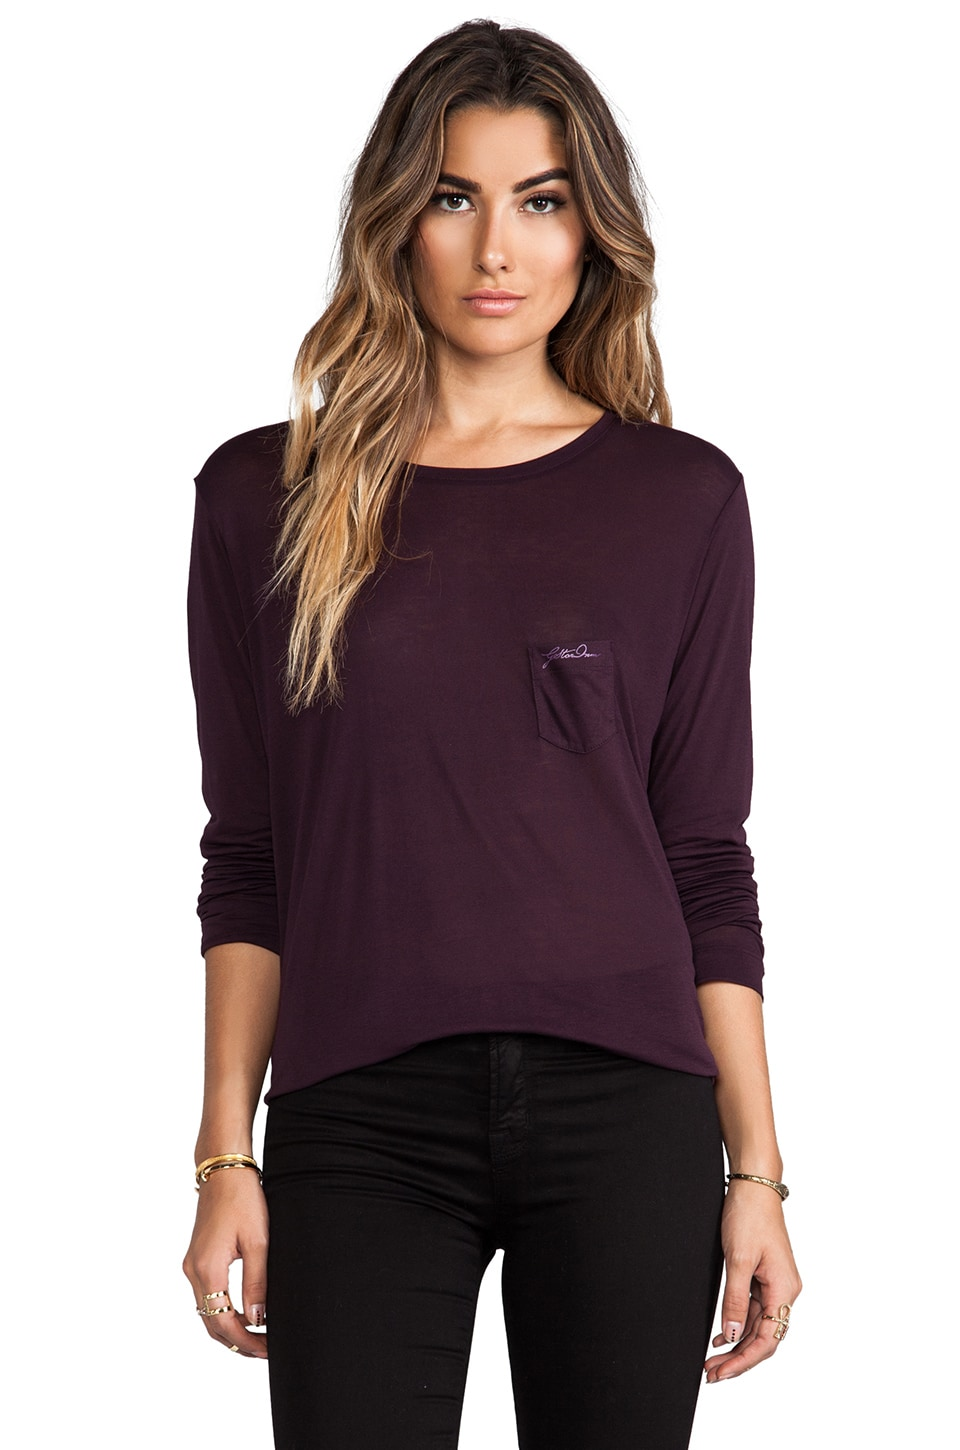 G-Star Loose R Tee Long Sleeve in AUBERGINE